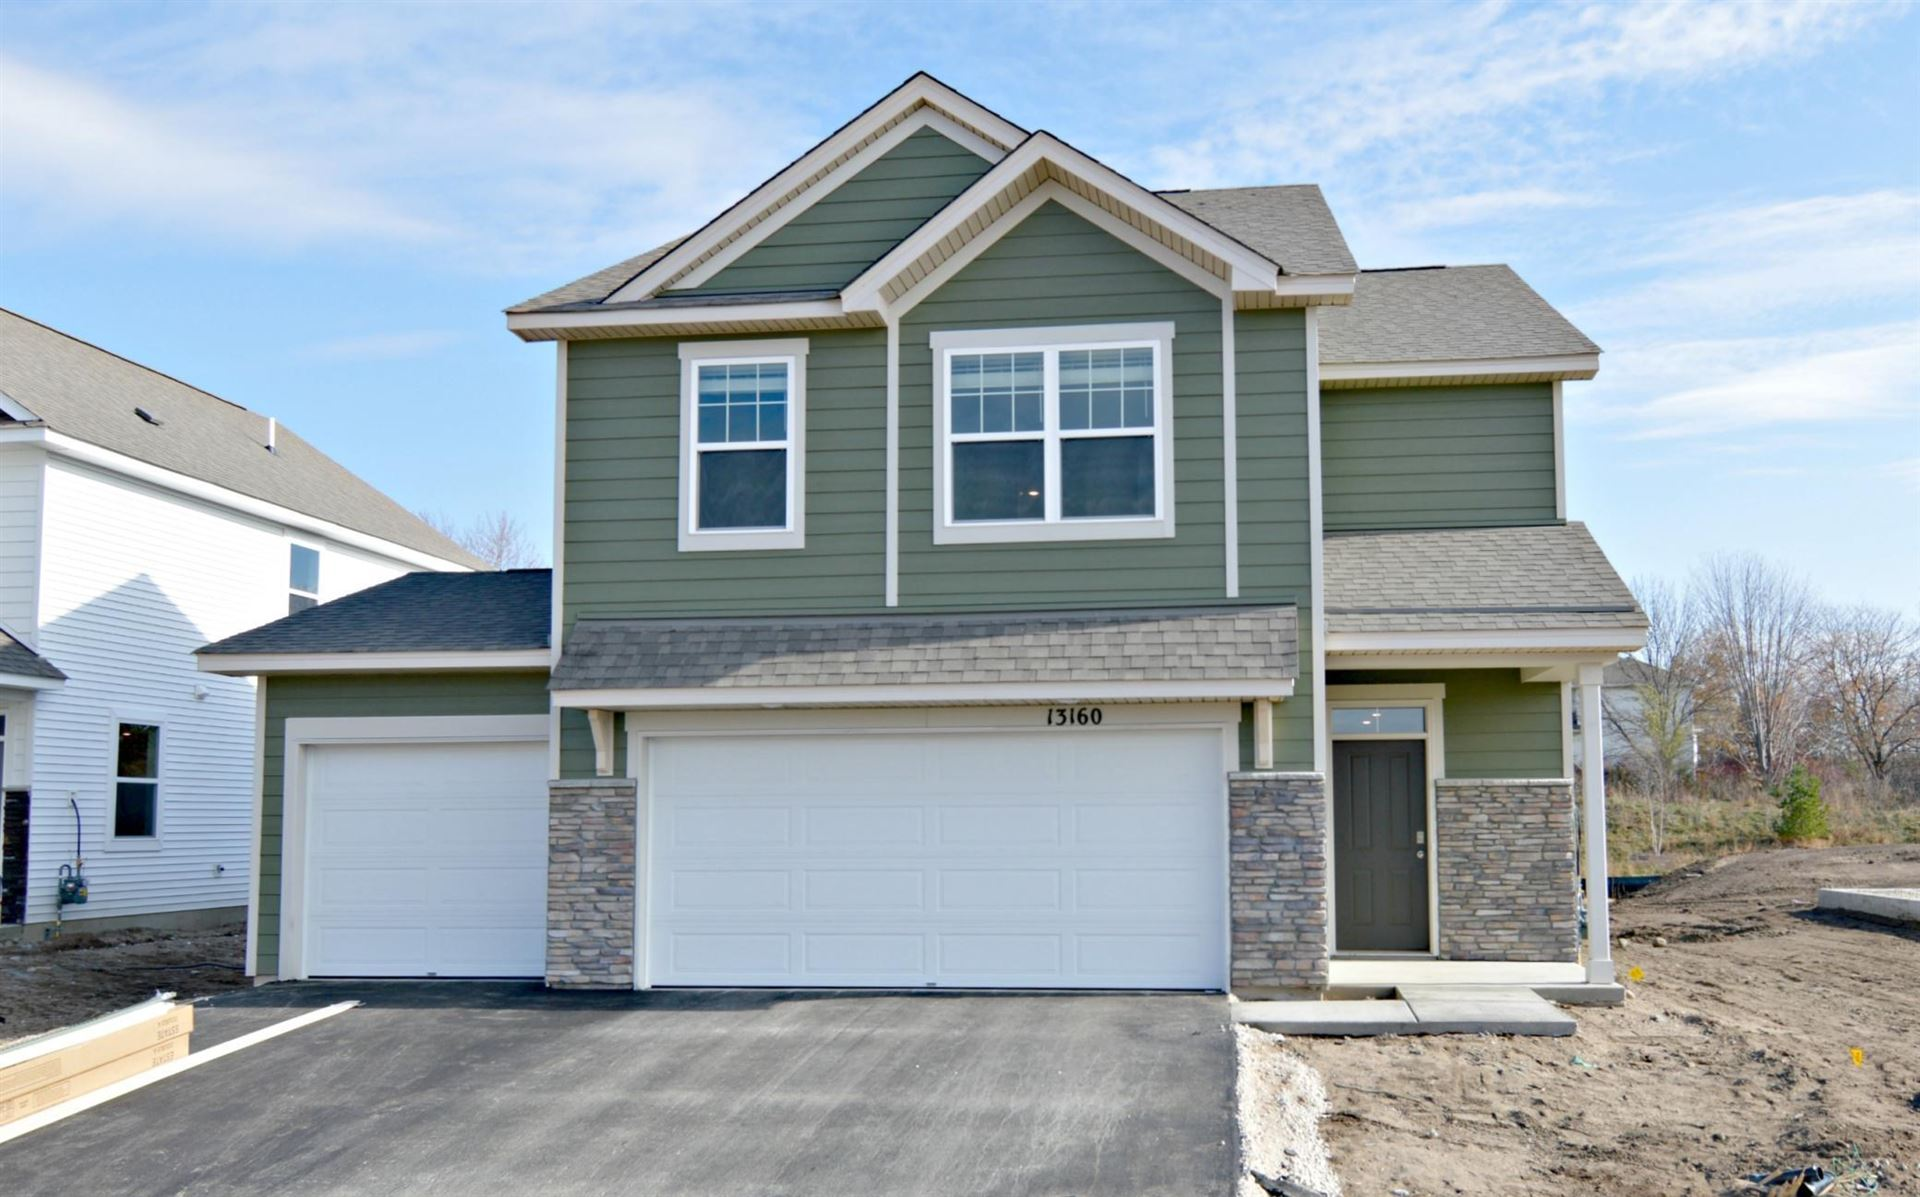 13160 Zachary Lane N, Dayton, MN 55327 - #: 5681018